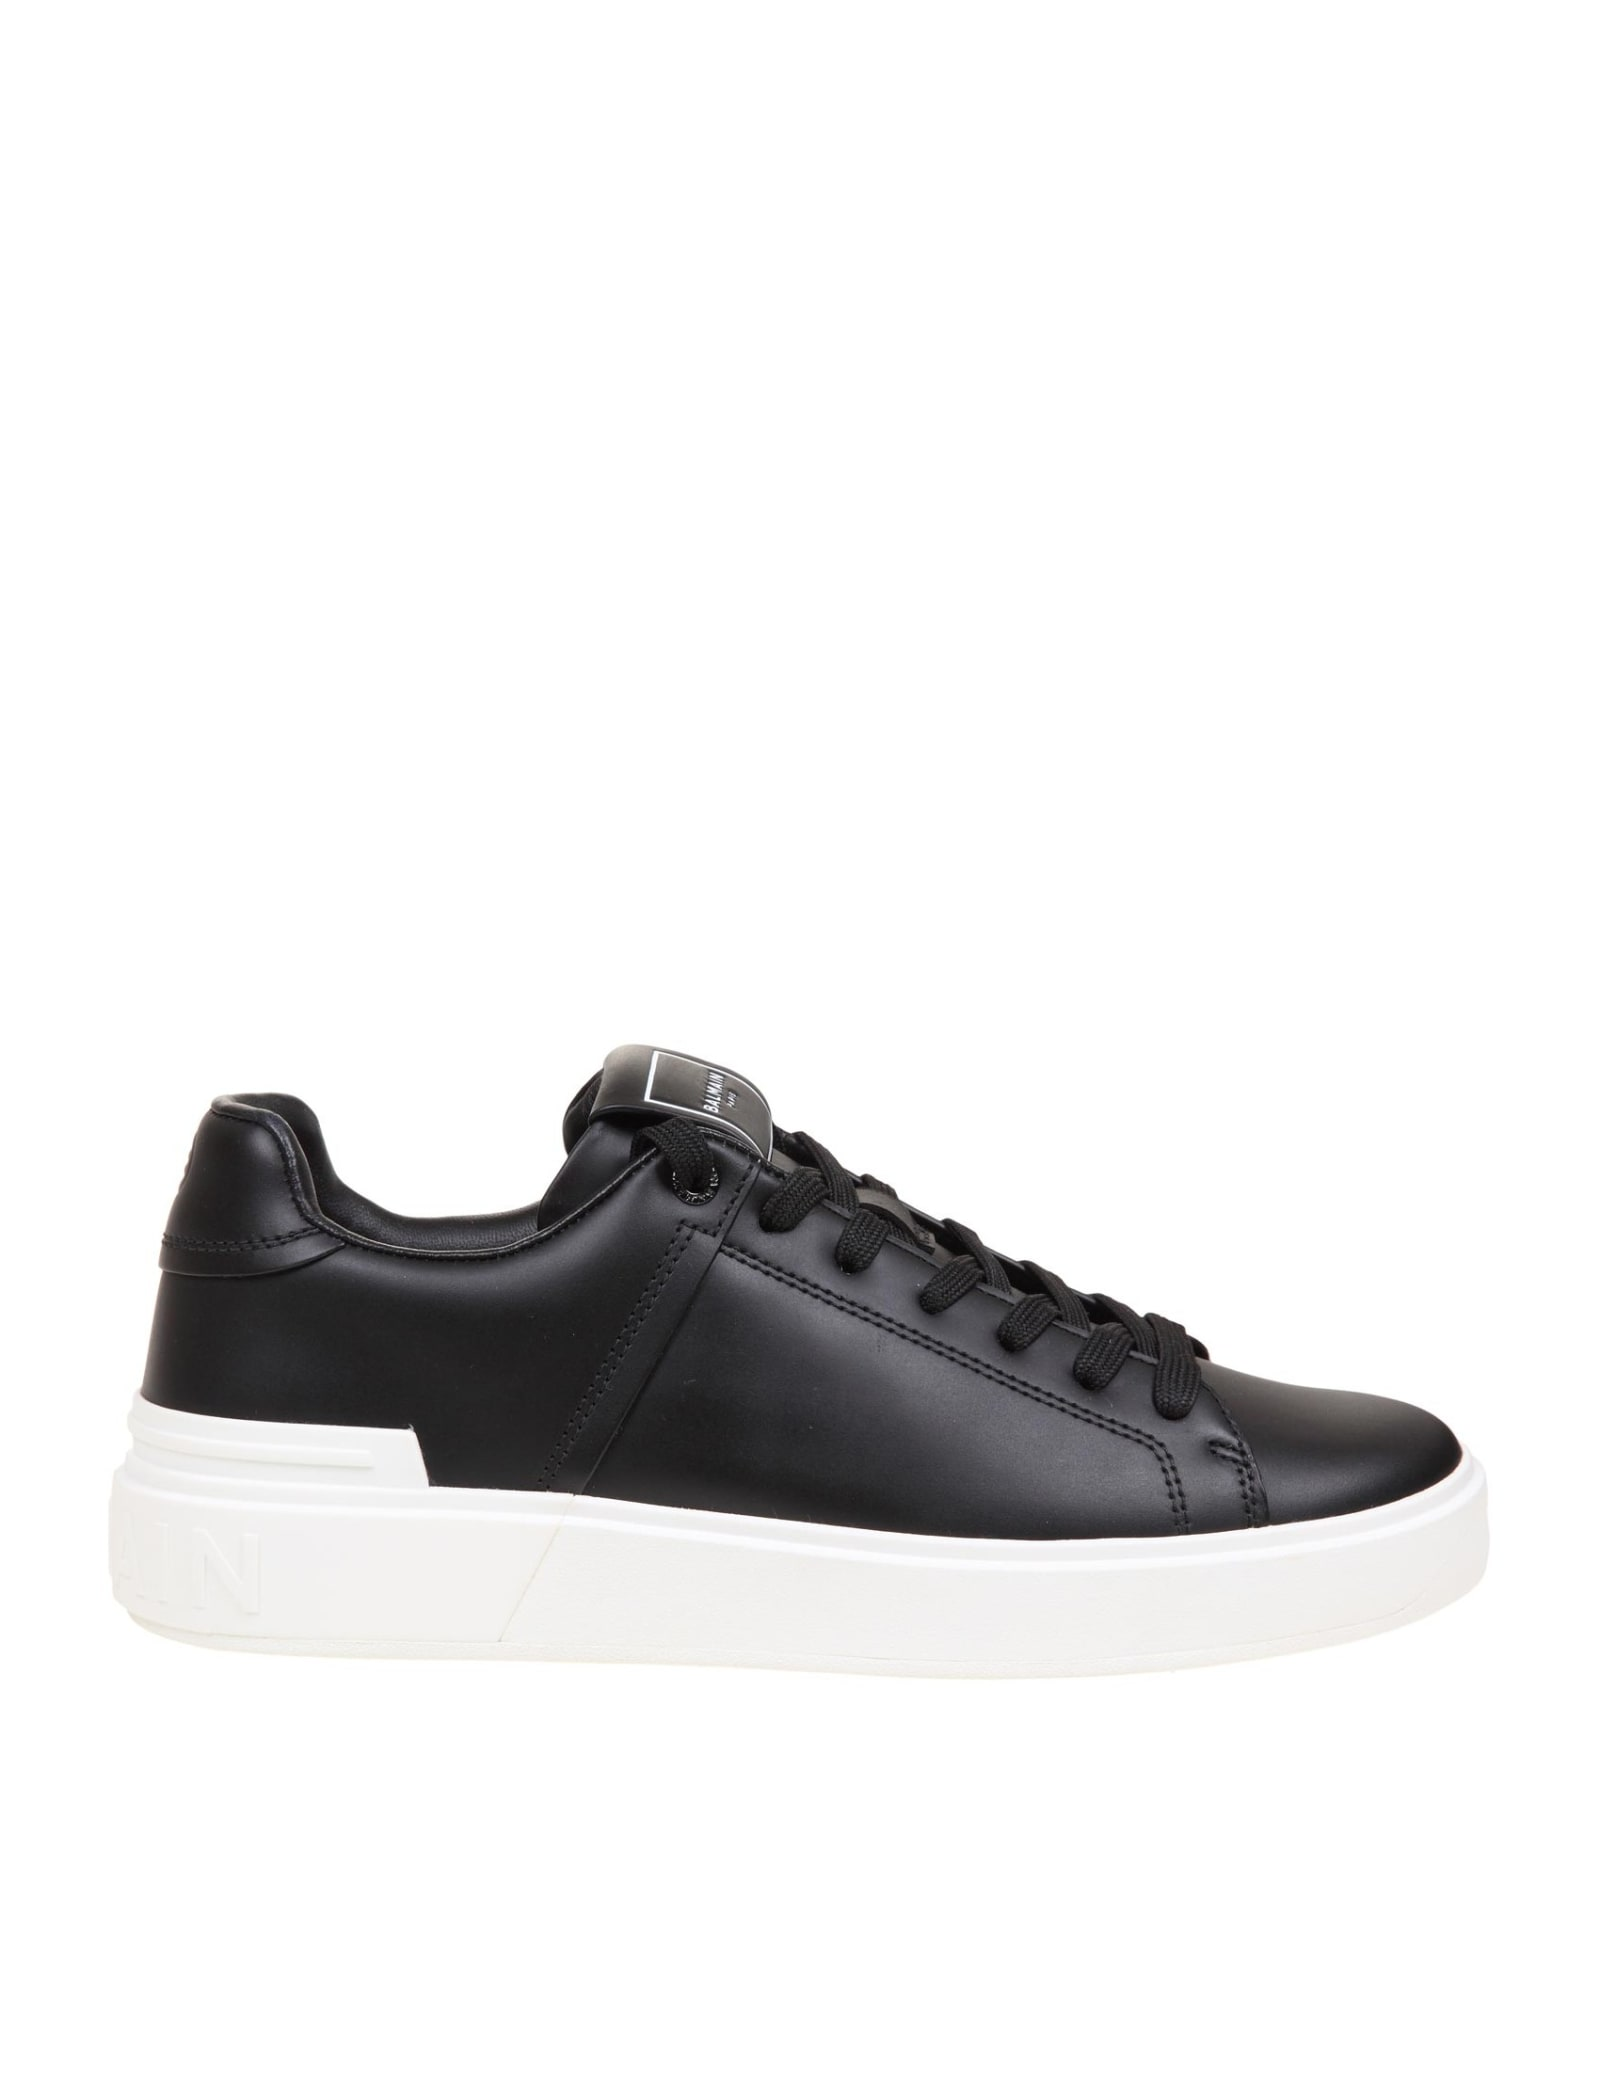 Balmain SNEAKER B COURT IN BLACK LEATHER